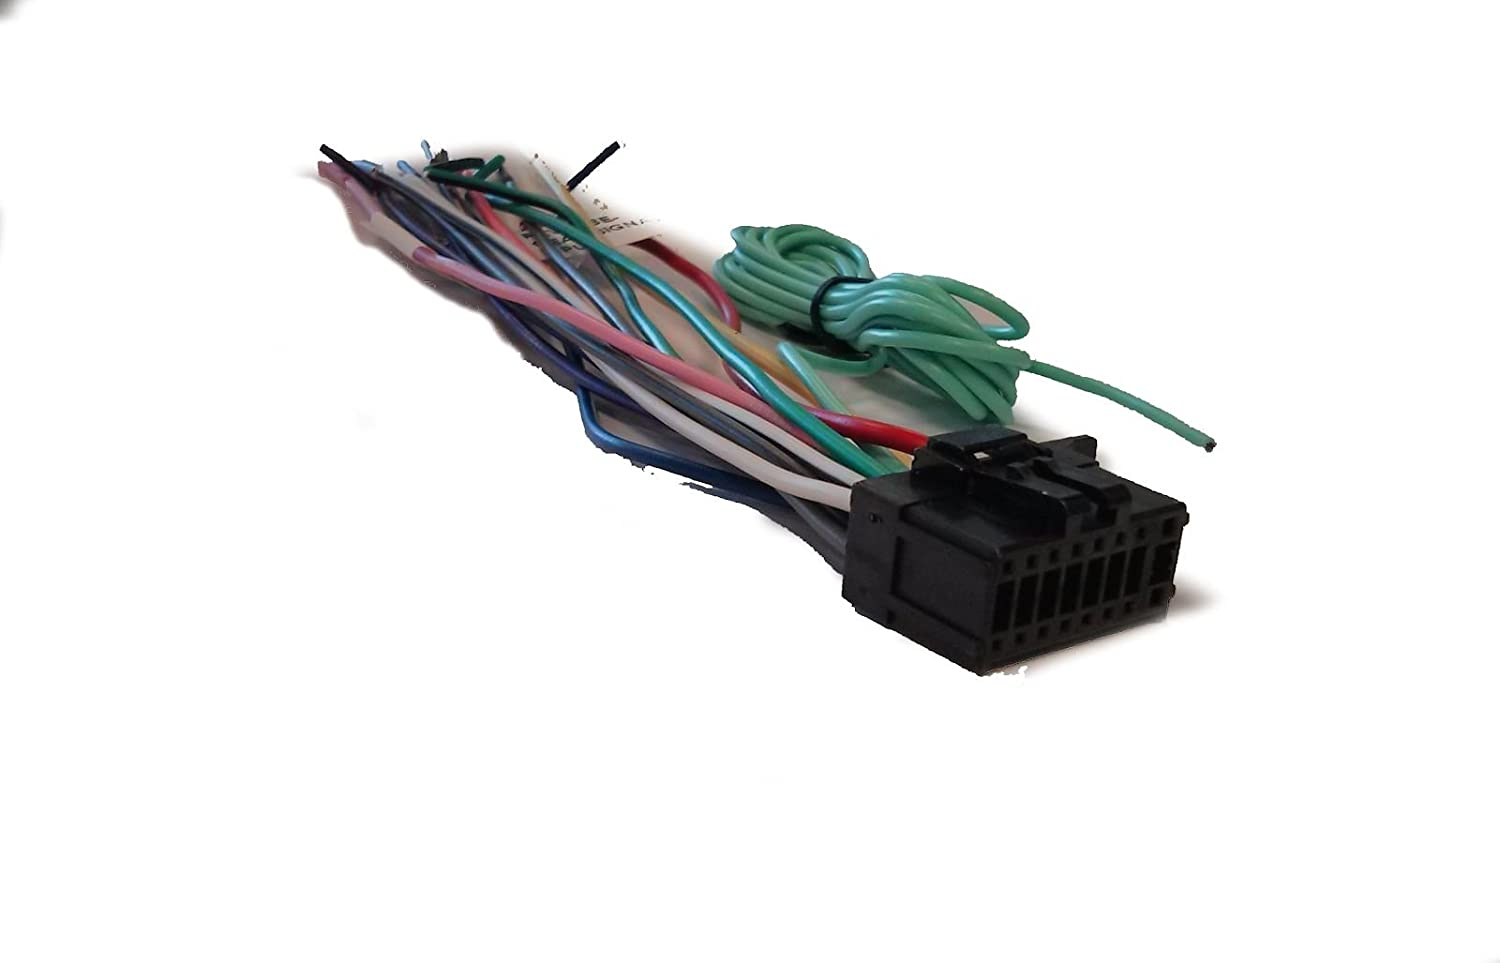 61s%2B2yUu BL._SL1500_ amazon com pioneer wire harness for sph da210 sph da100 sph da200 sph-da100 wiring harness at readyjetset.co